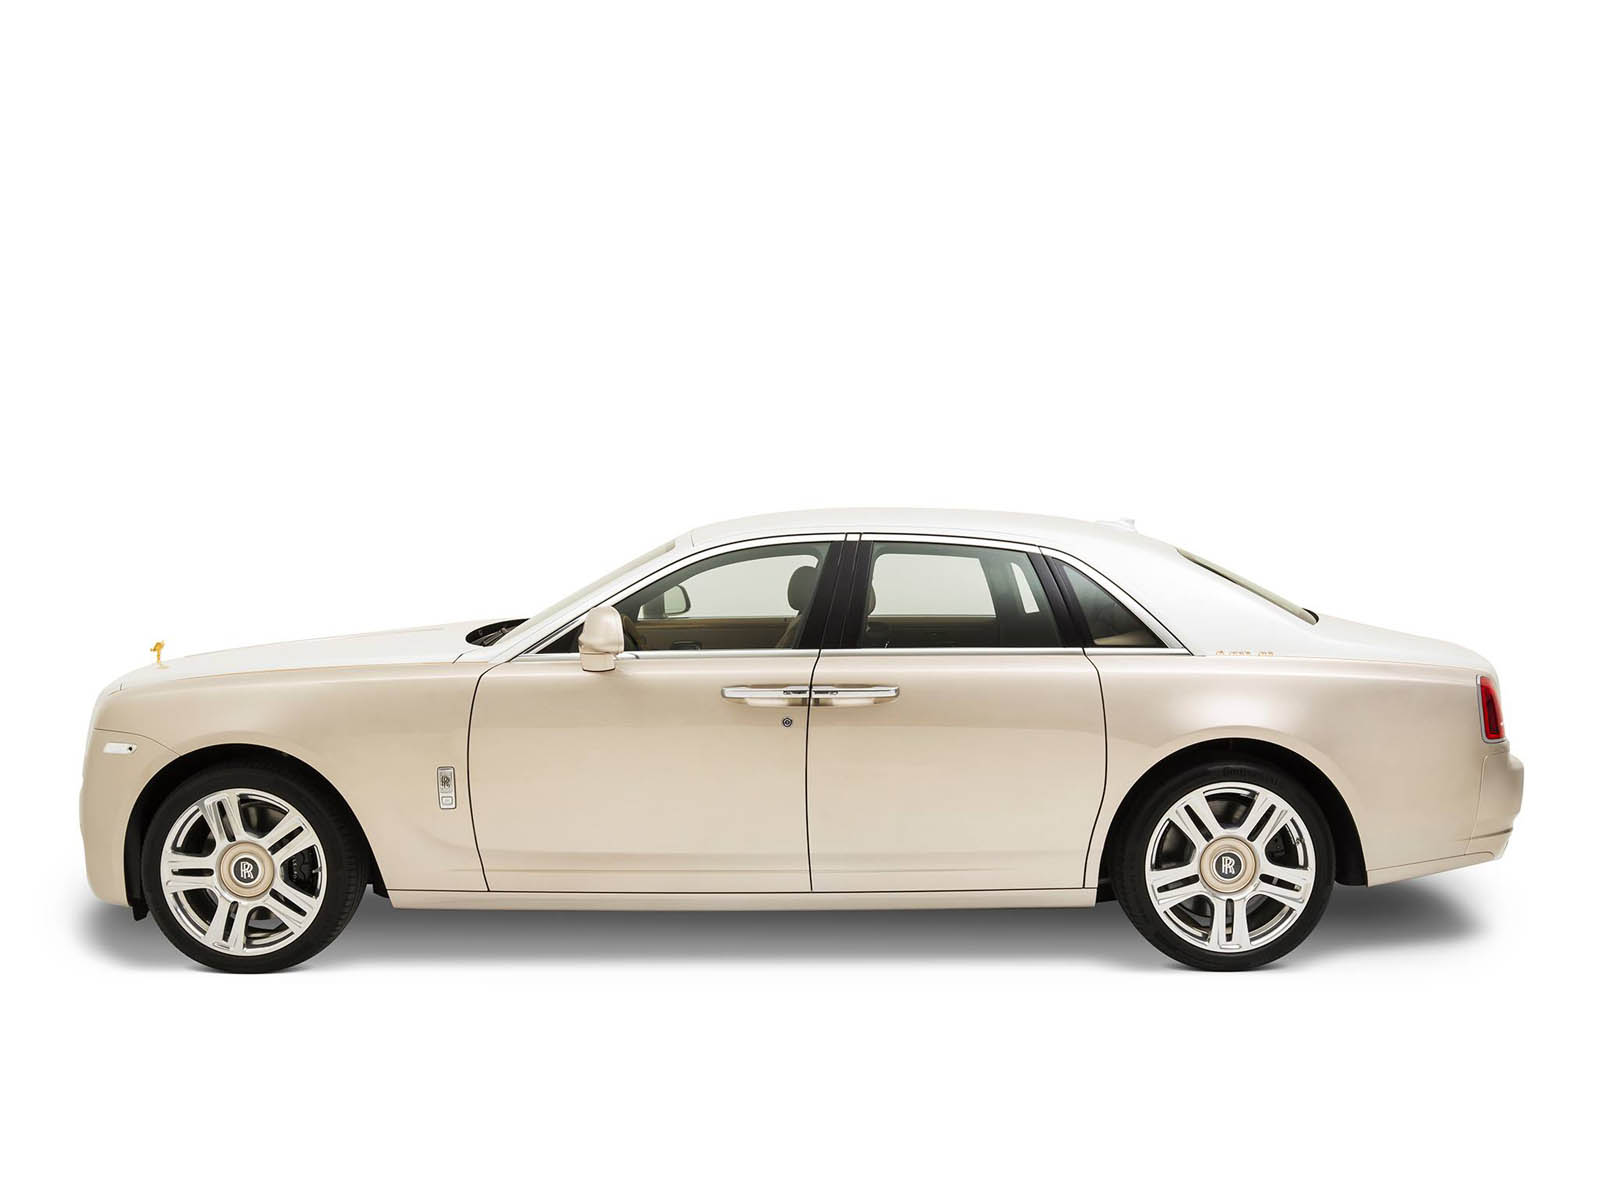 rolls-royce-Ghost-inspired-by-Ancient-Trade-Routes-11